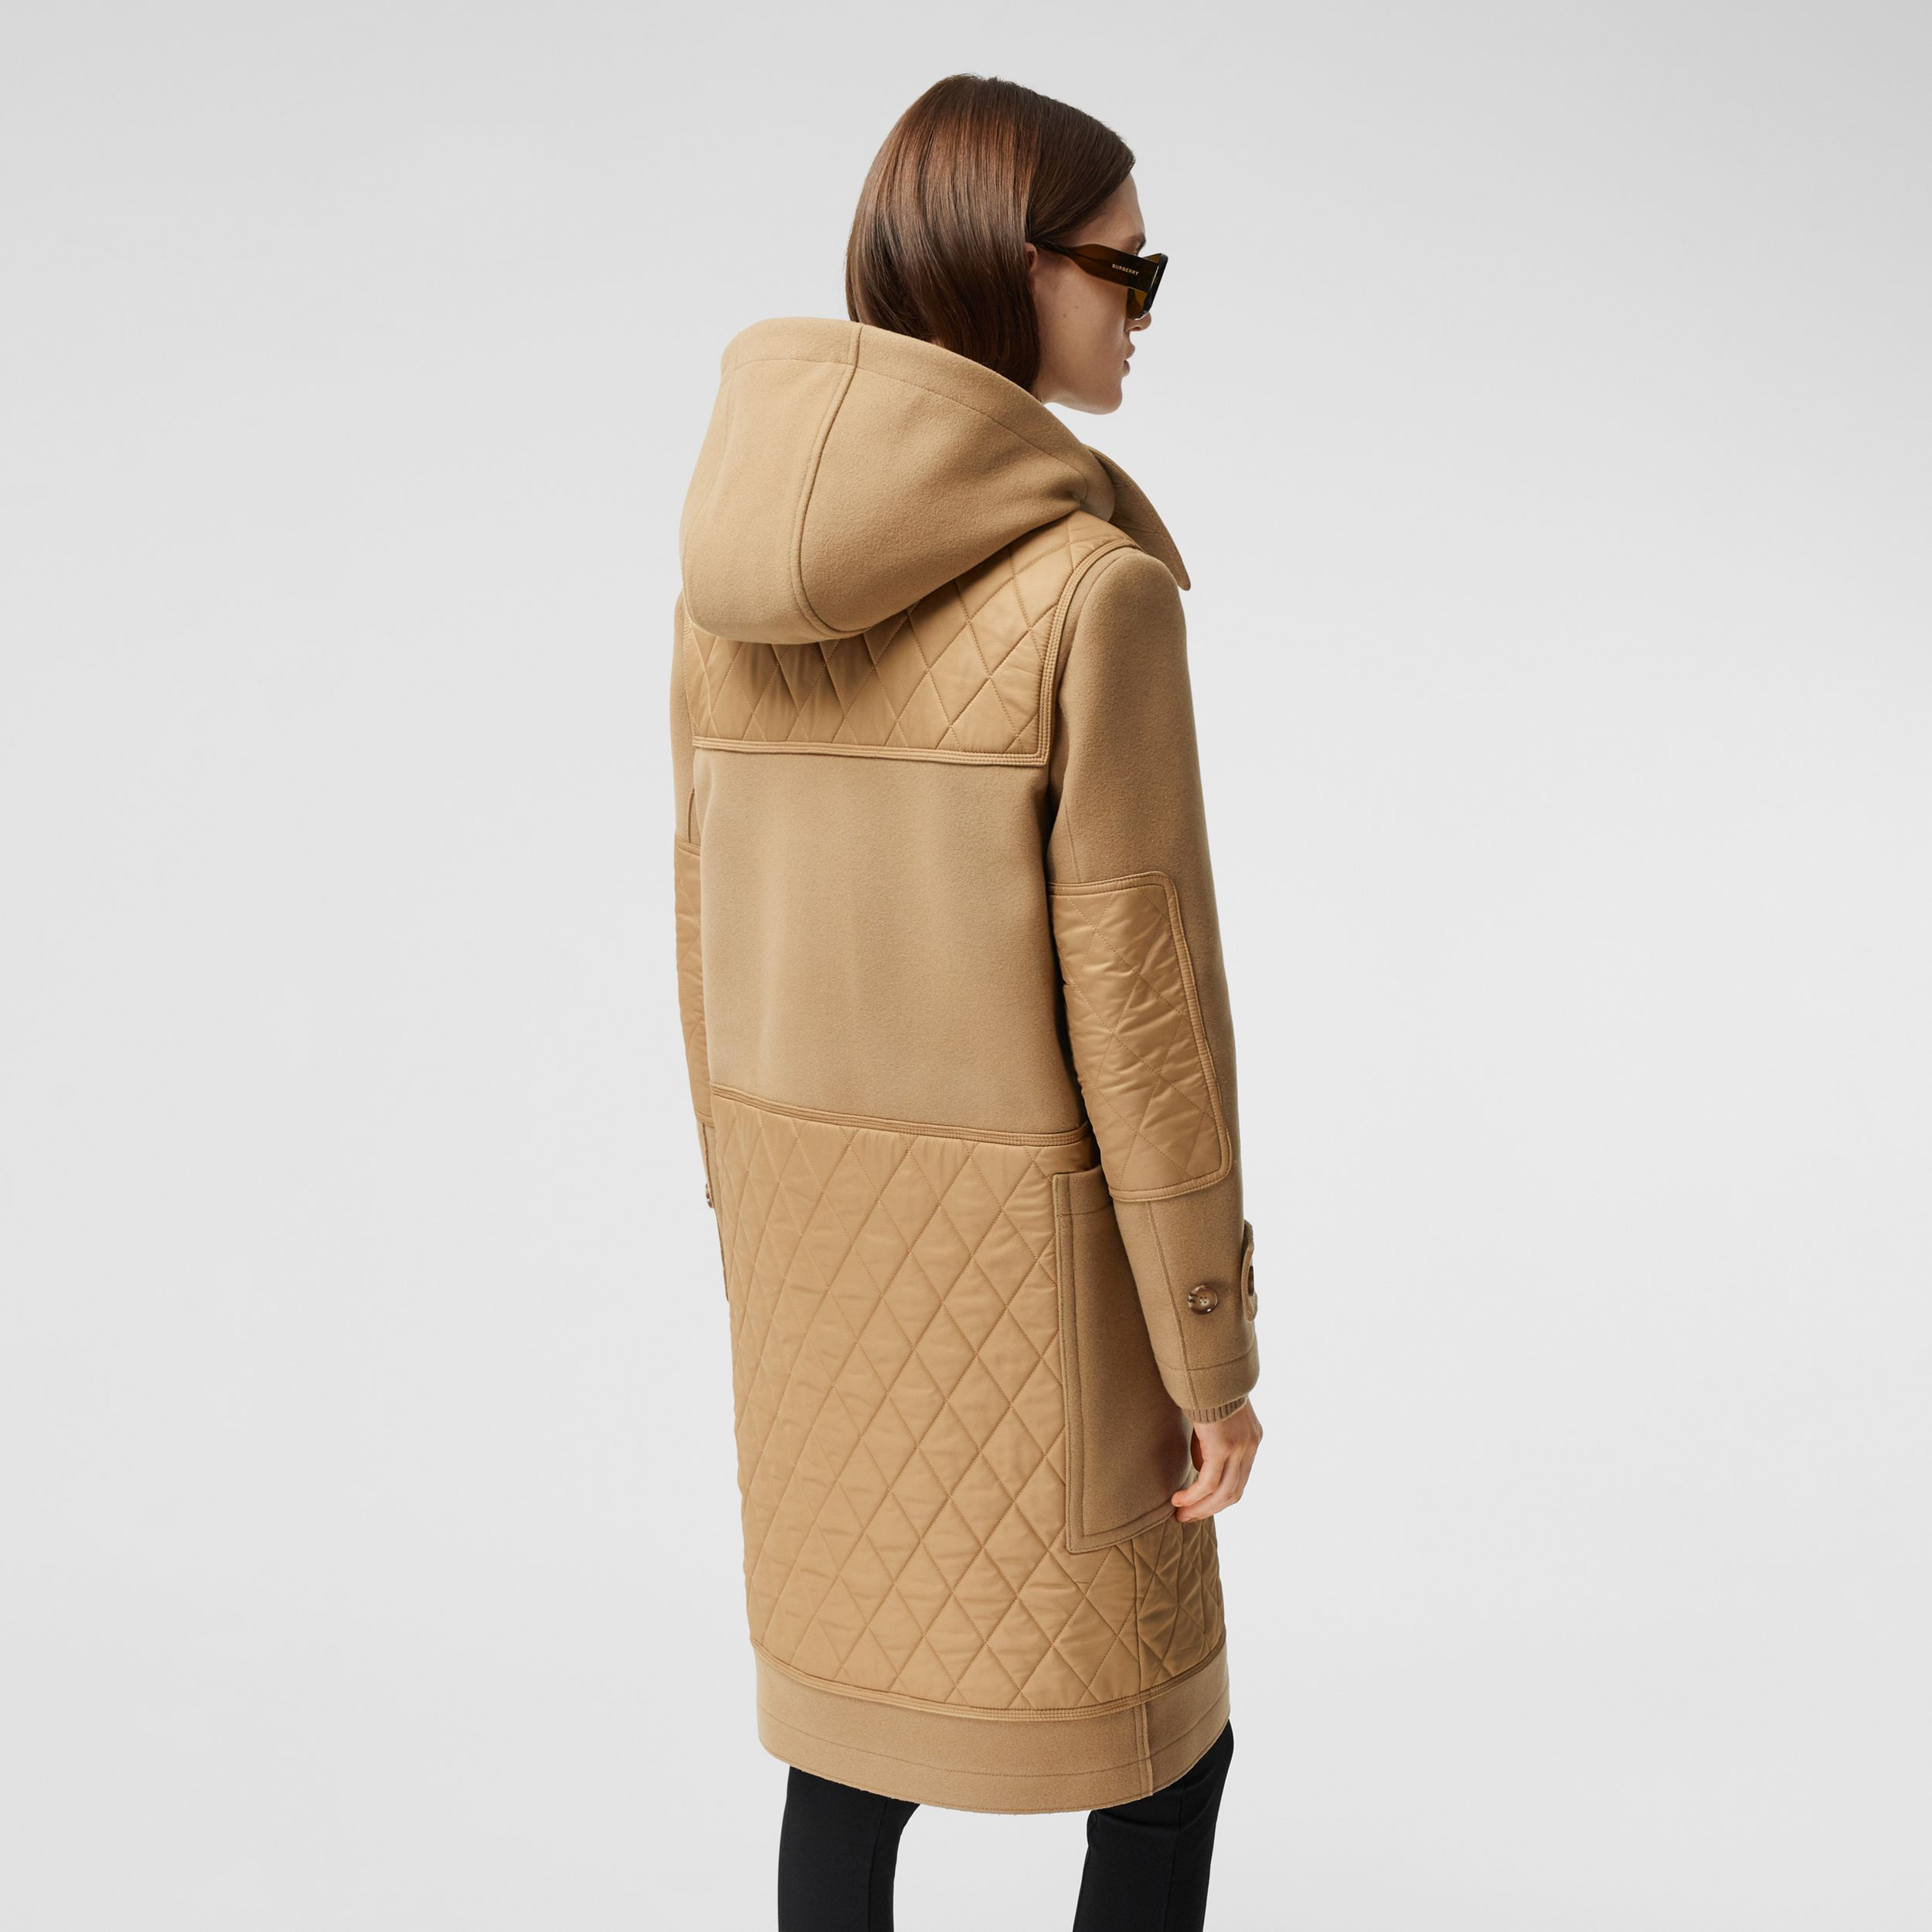 Diamond Quilted Panel Technical Wool Duffle Coat in Camel - Women | Burberry - 3